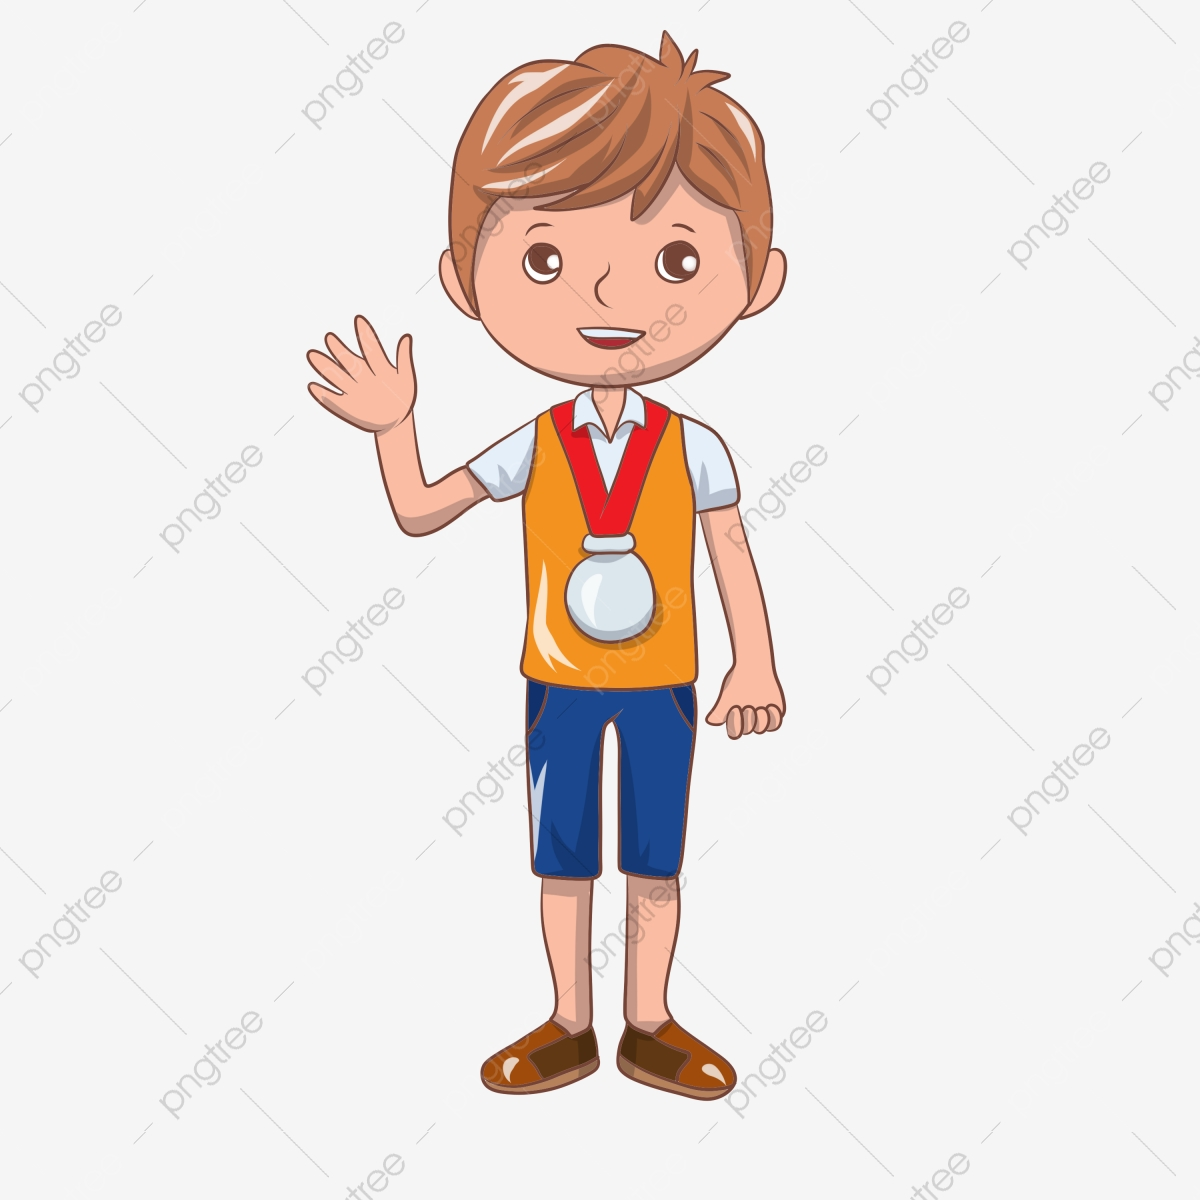 Hand painted receive a. Medal clipart champion boy